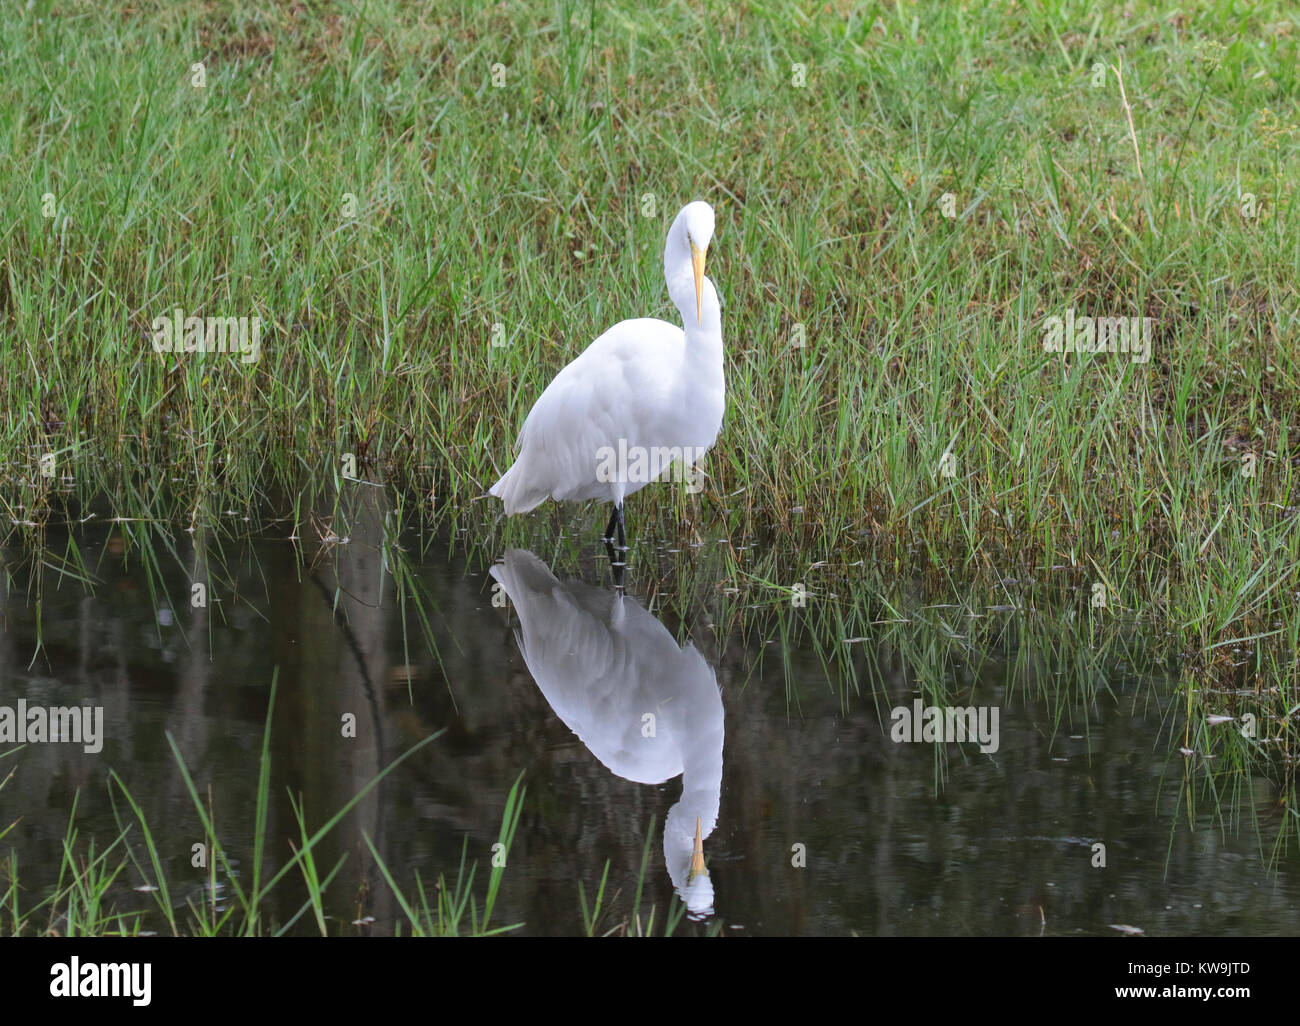 Great egret with mirror image in water reflection - Stock Image